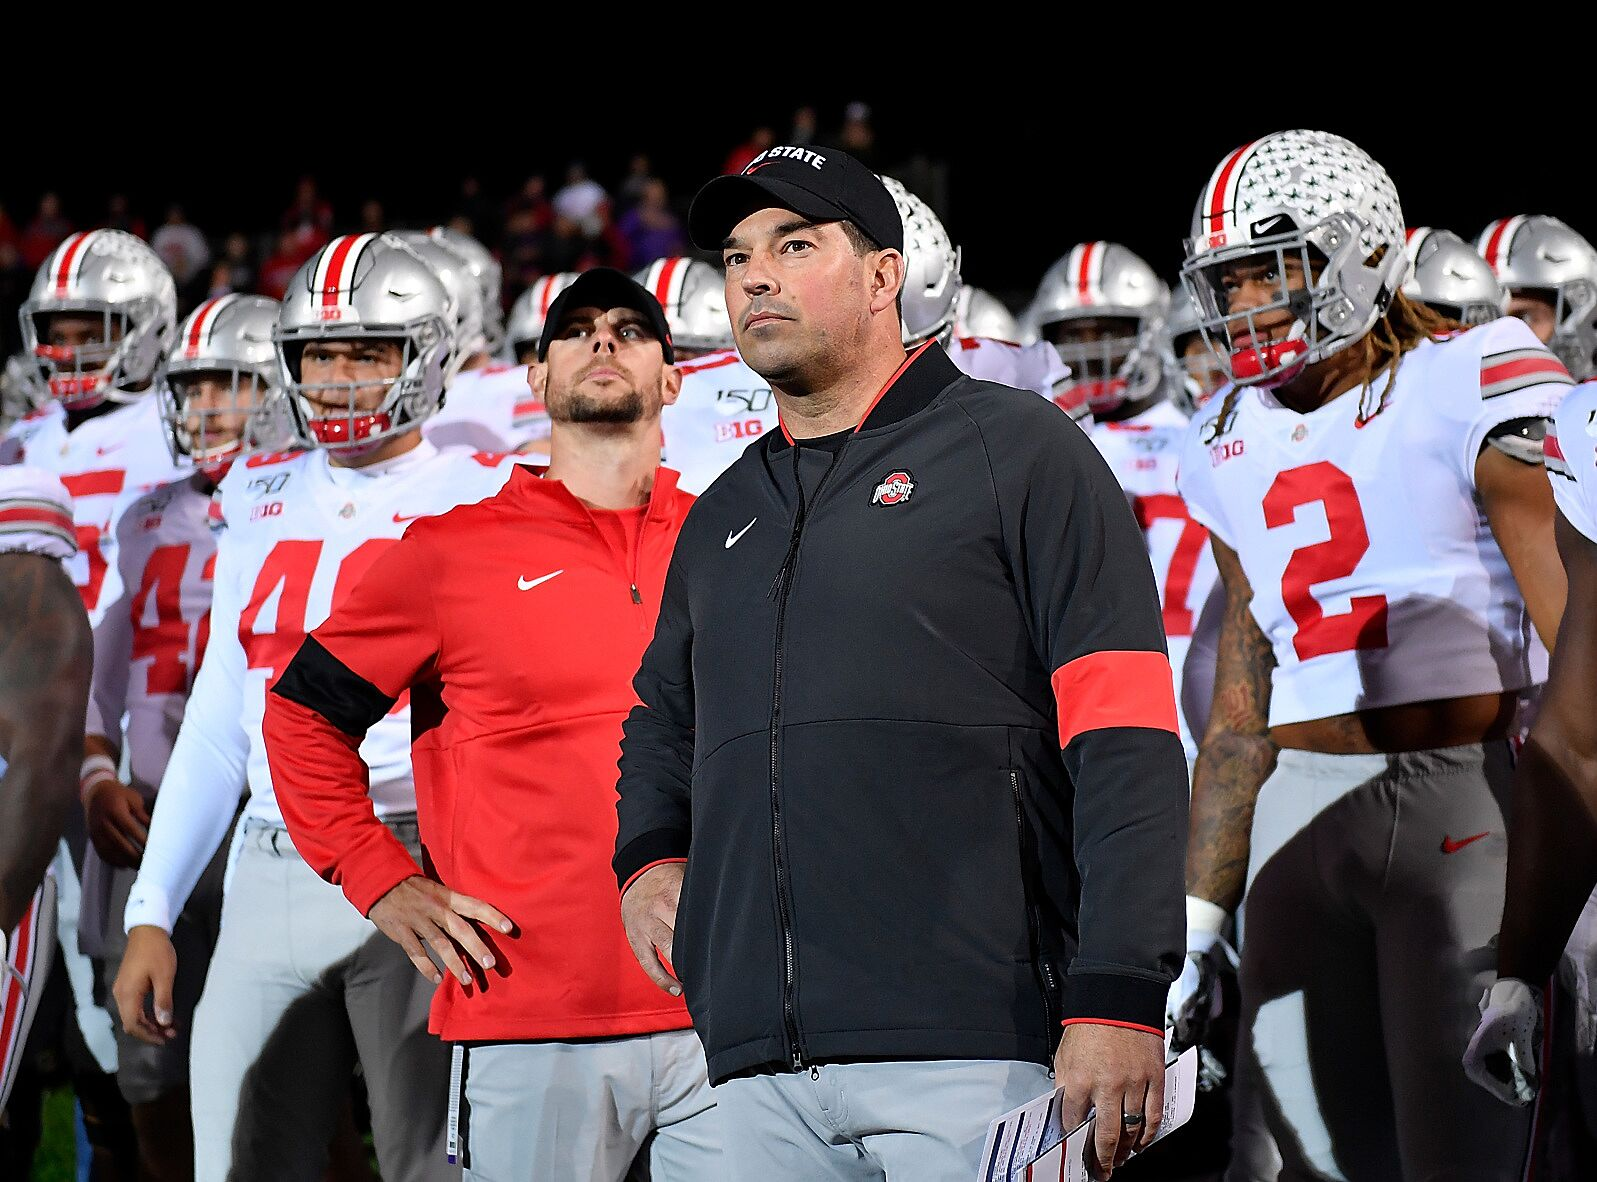 Ohio State Football: Buckeye Leafs for Northwestern game